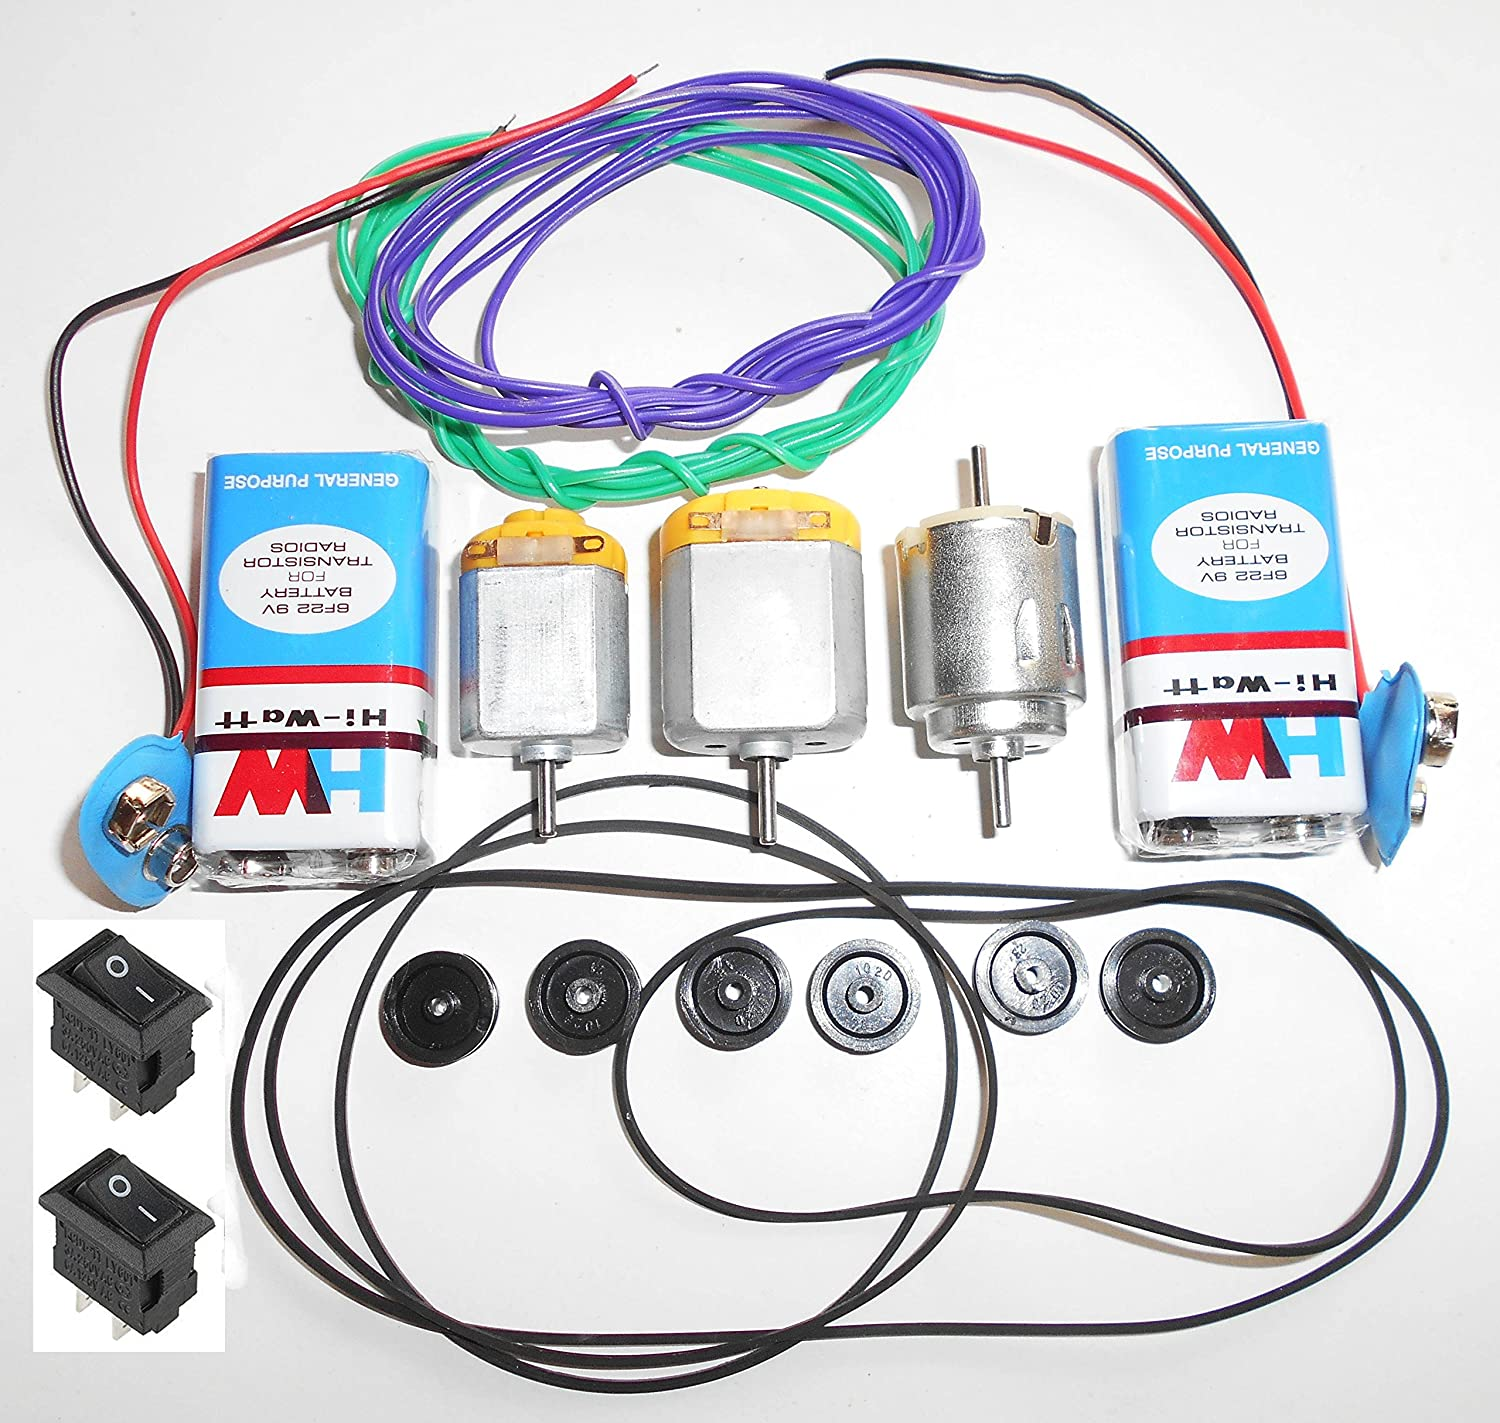 Vyga Project Diy Kit/3 Types Dc Motor With 6 Small Pulley Wheels+ 2  Battery(9Volt) With Snap(Connector)+ 4 Gear/Pully Belt + 2 Meter Wire + 2  Switch